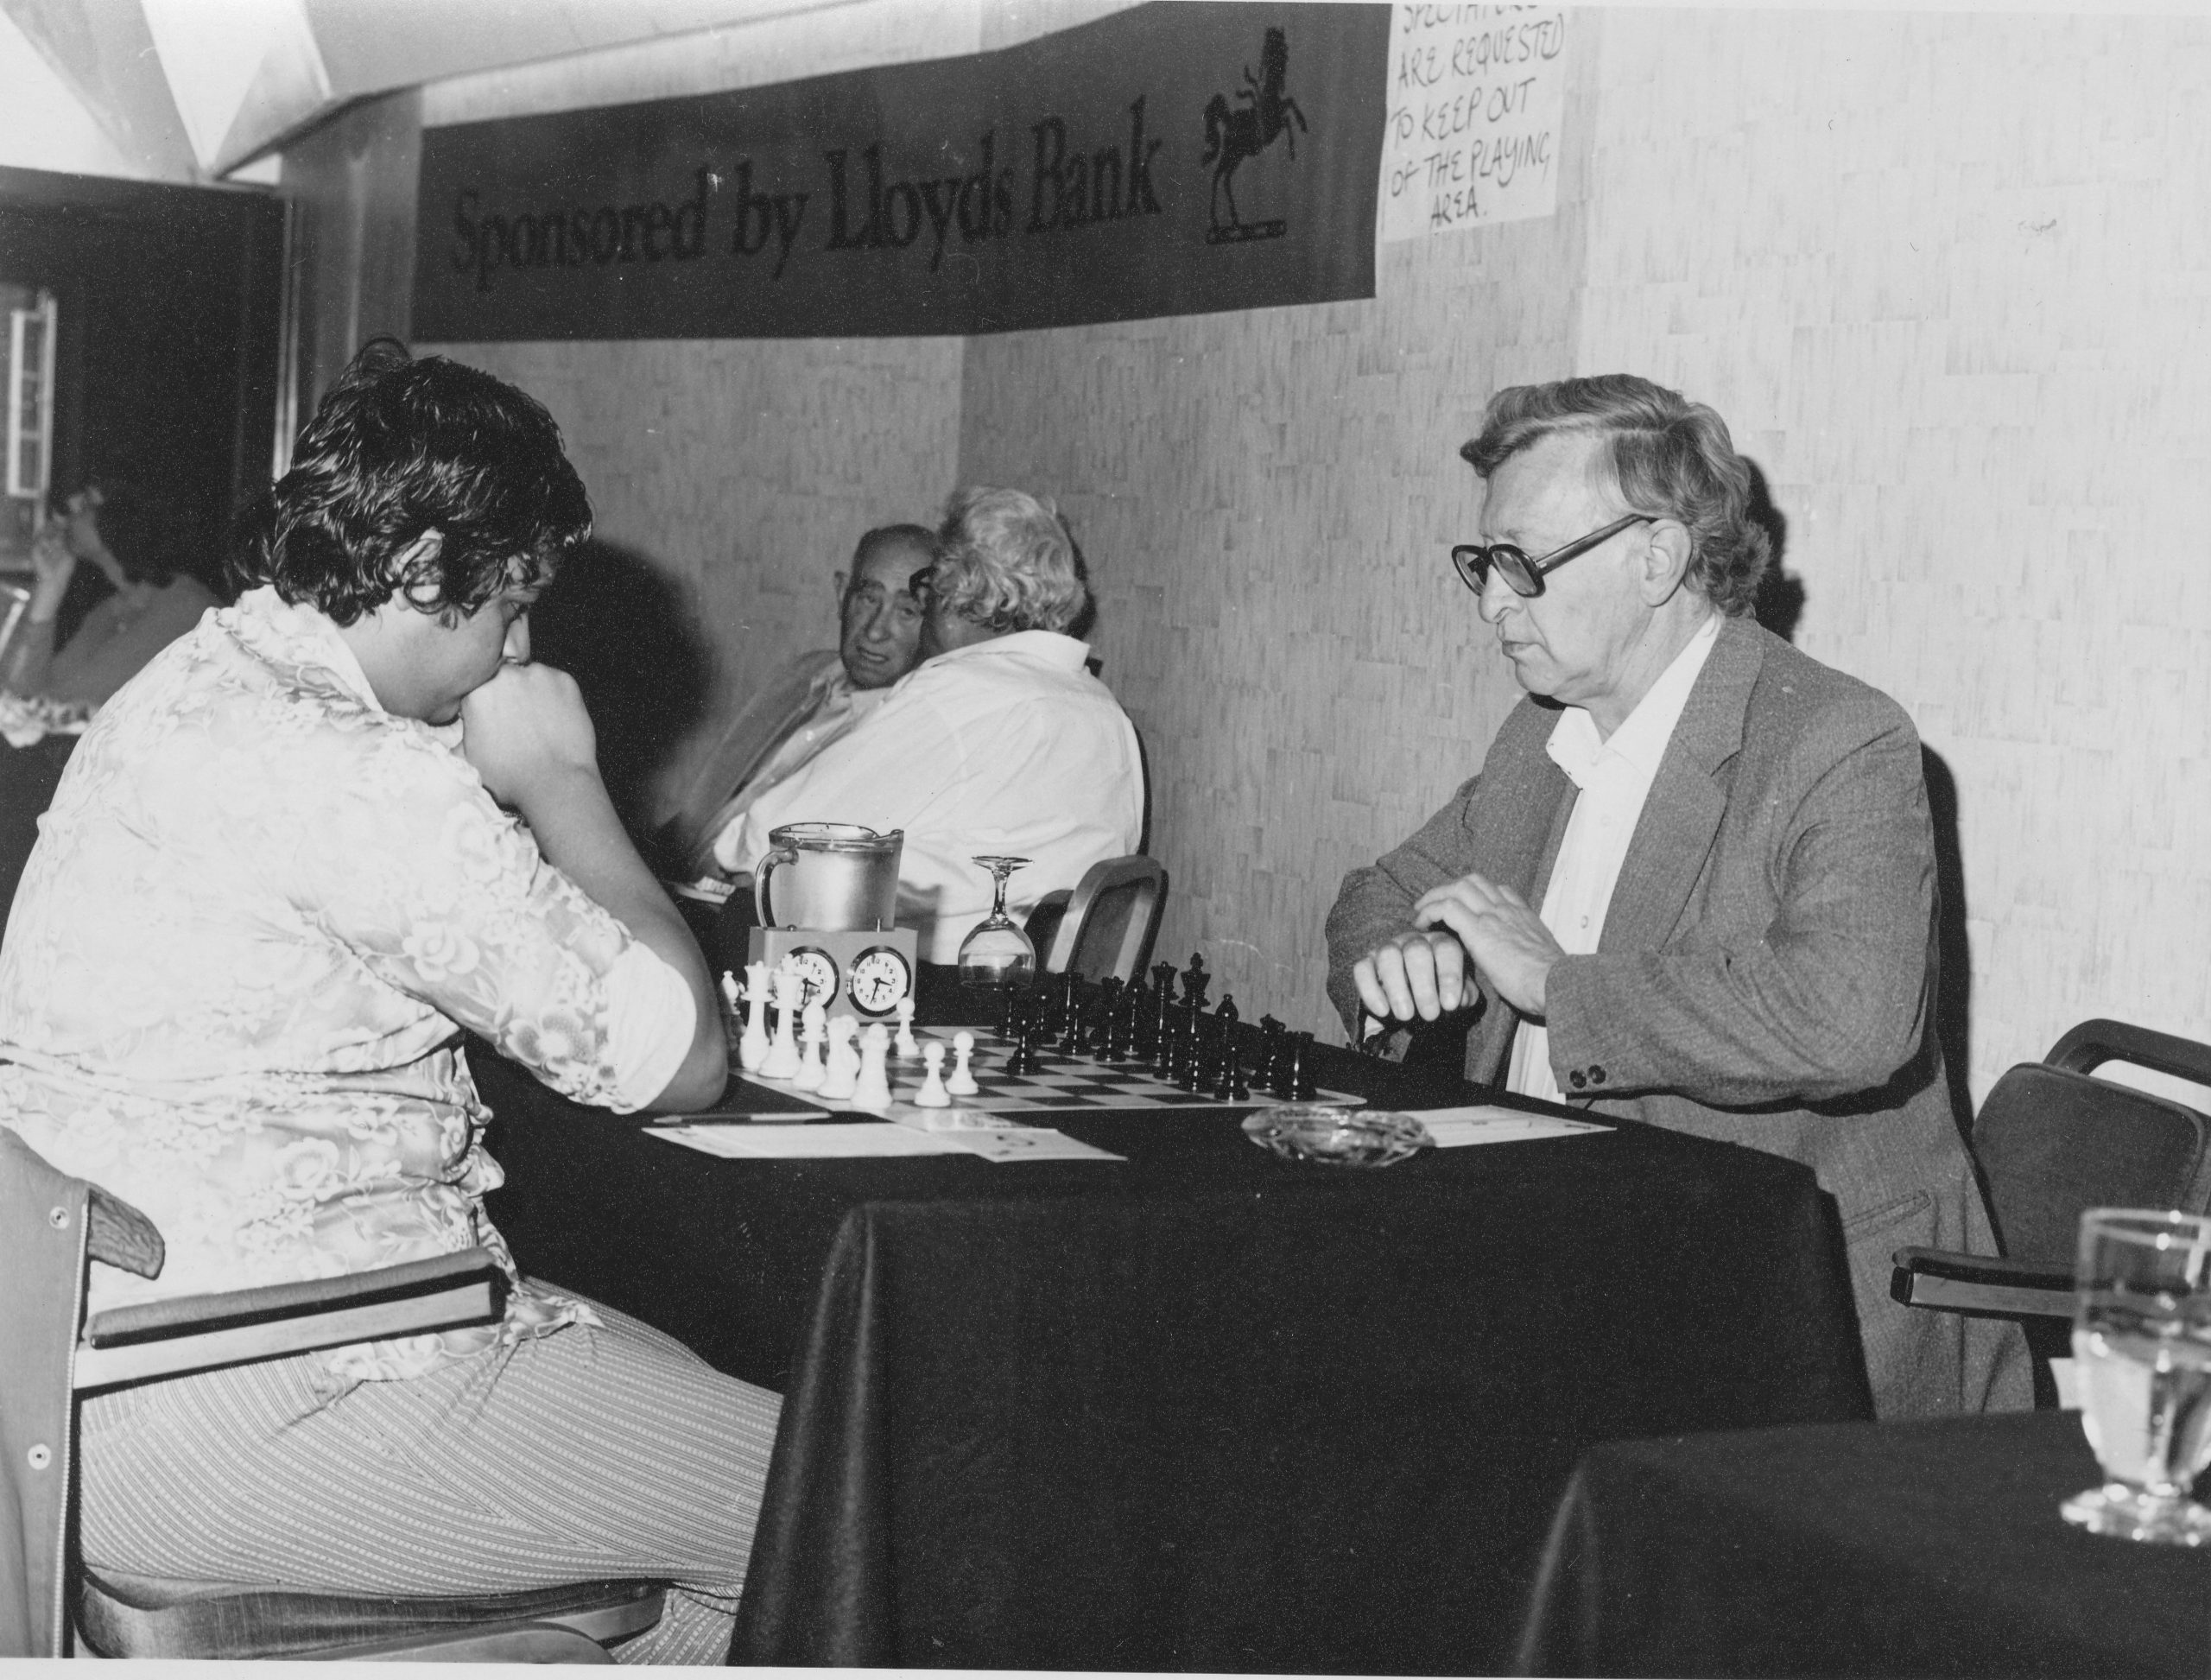 IM Vaidyanathan Ravikumar v. Vassily Smyslov, Lloyds Bank Open, round 6, 30th August 1981. The game was drawn in 33 moves.